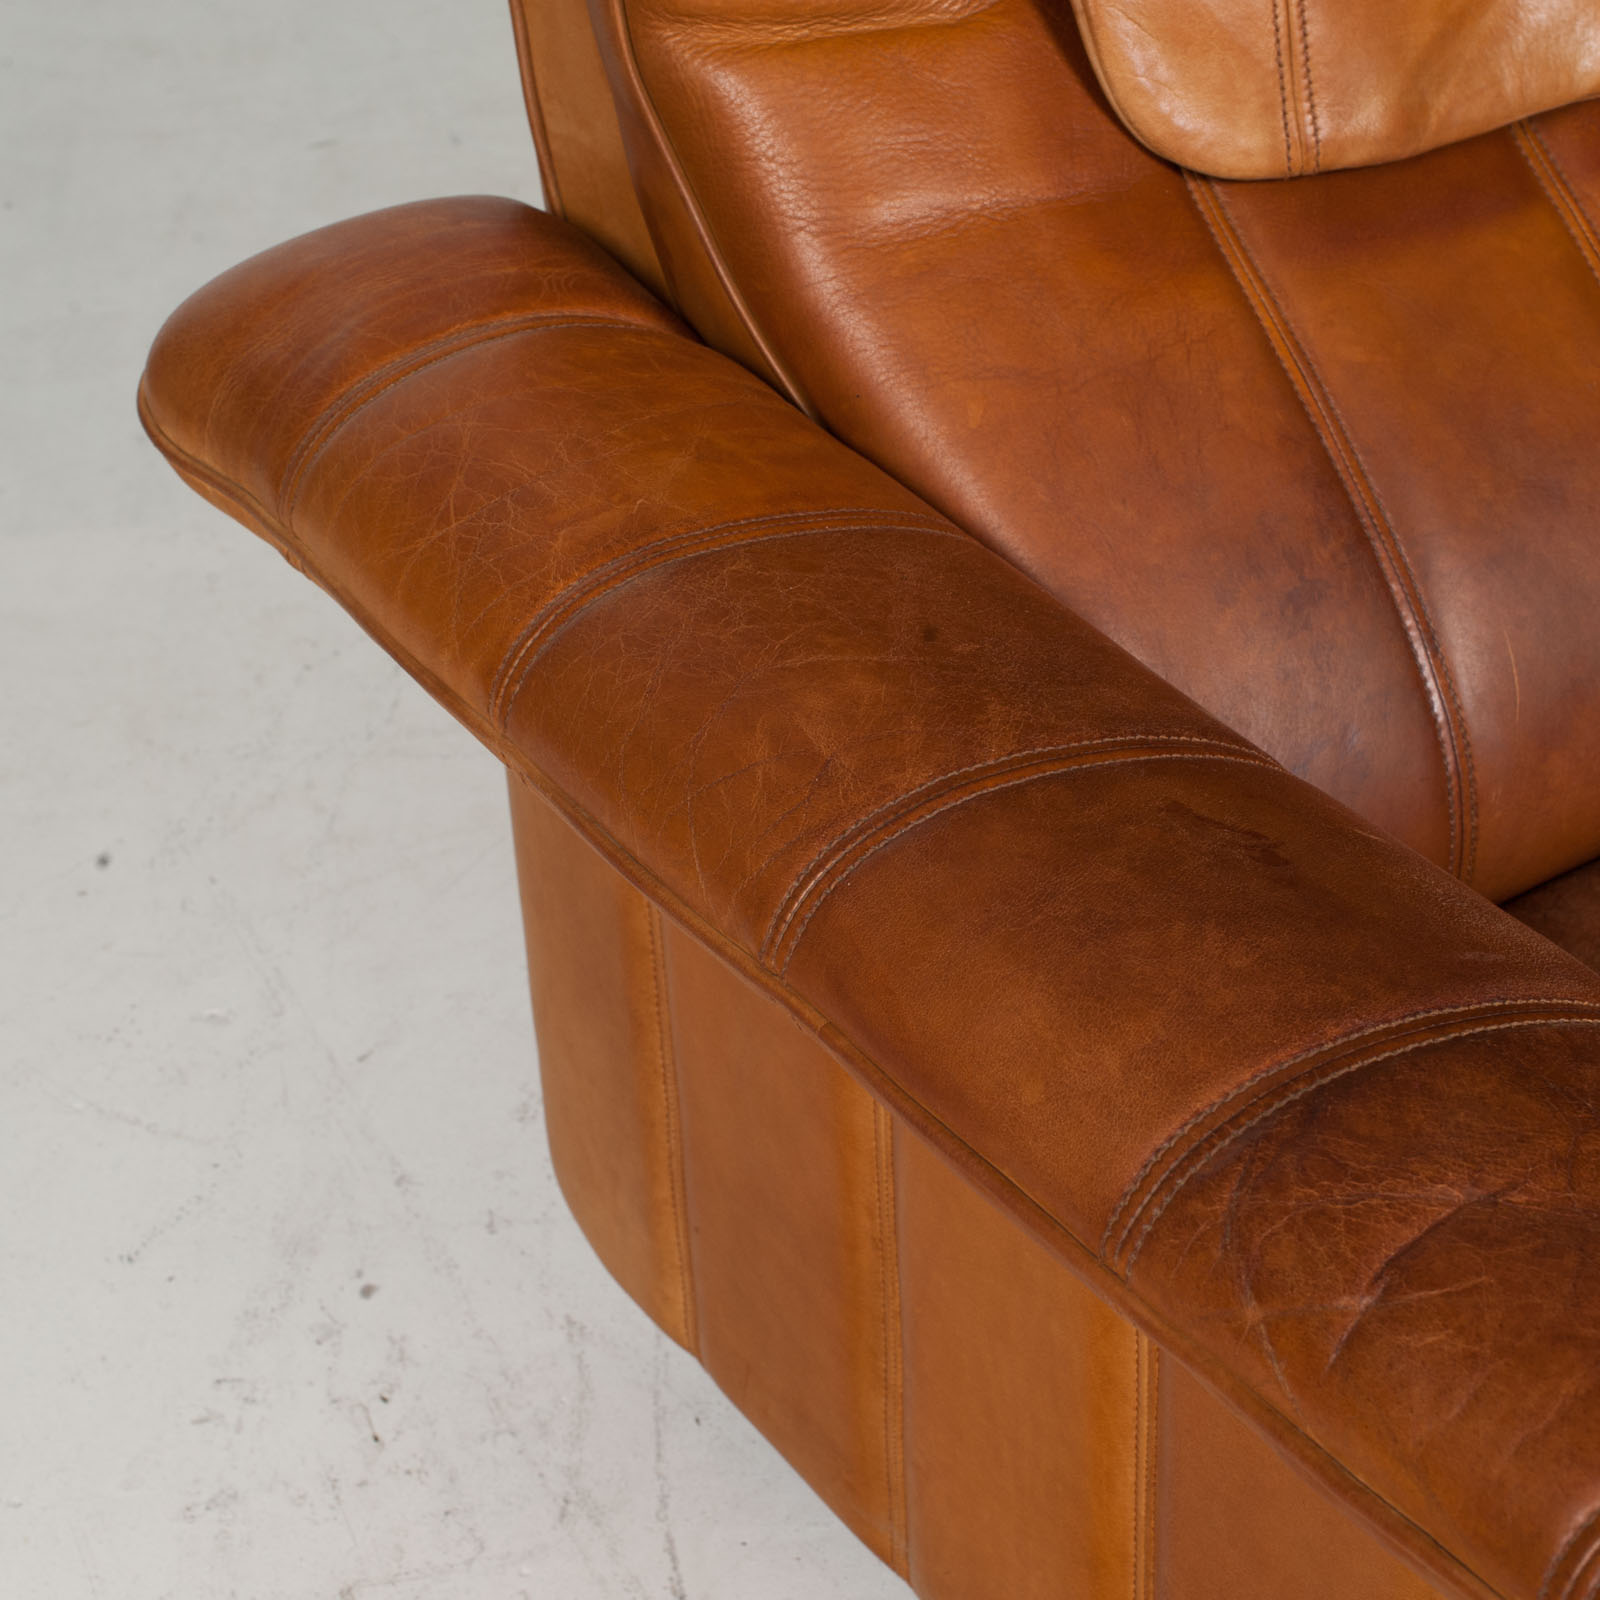 2 Seat Sofa By De Sede In Tan Leather 1970s Switzerland 09